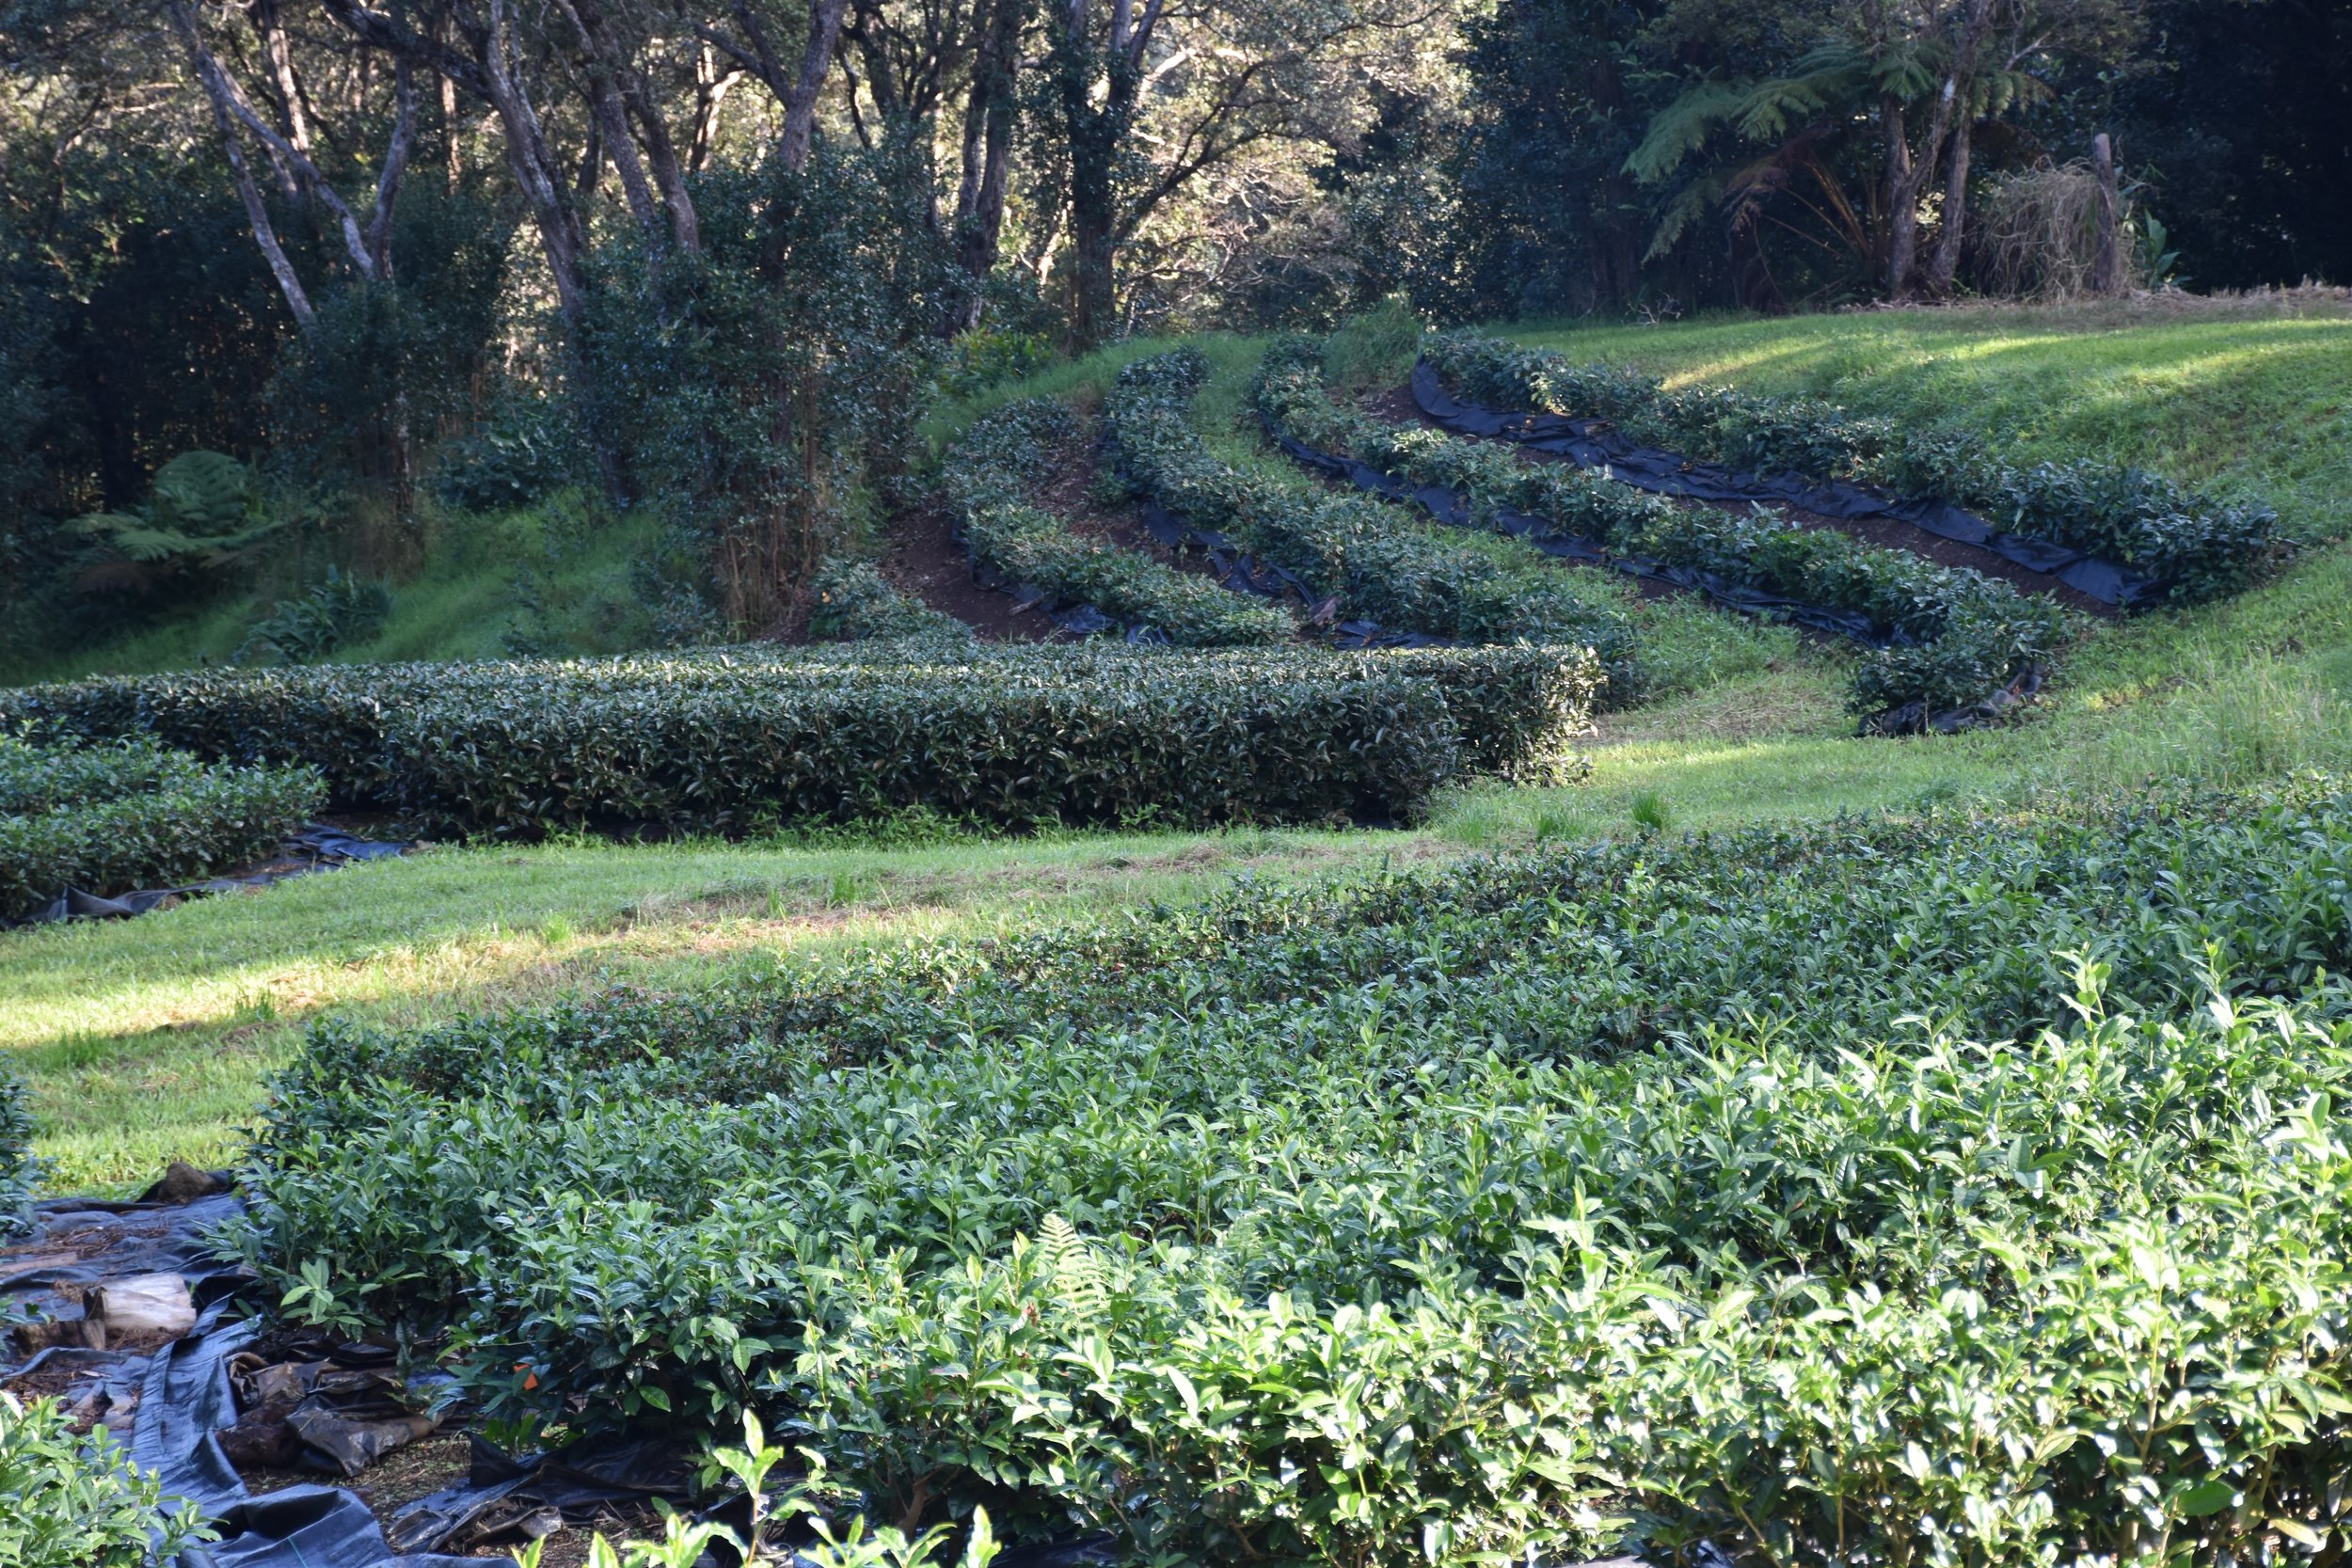 The Tea Fields at Mauna Kea Tea Farms#2